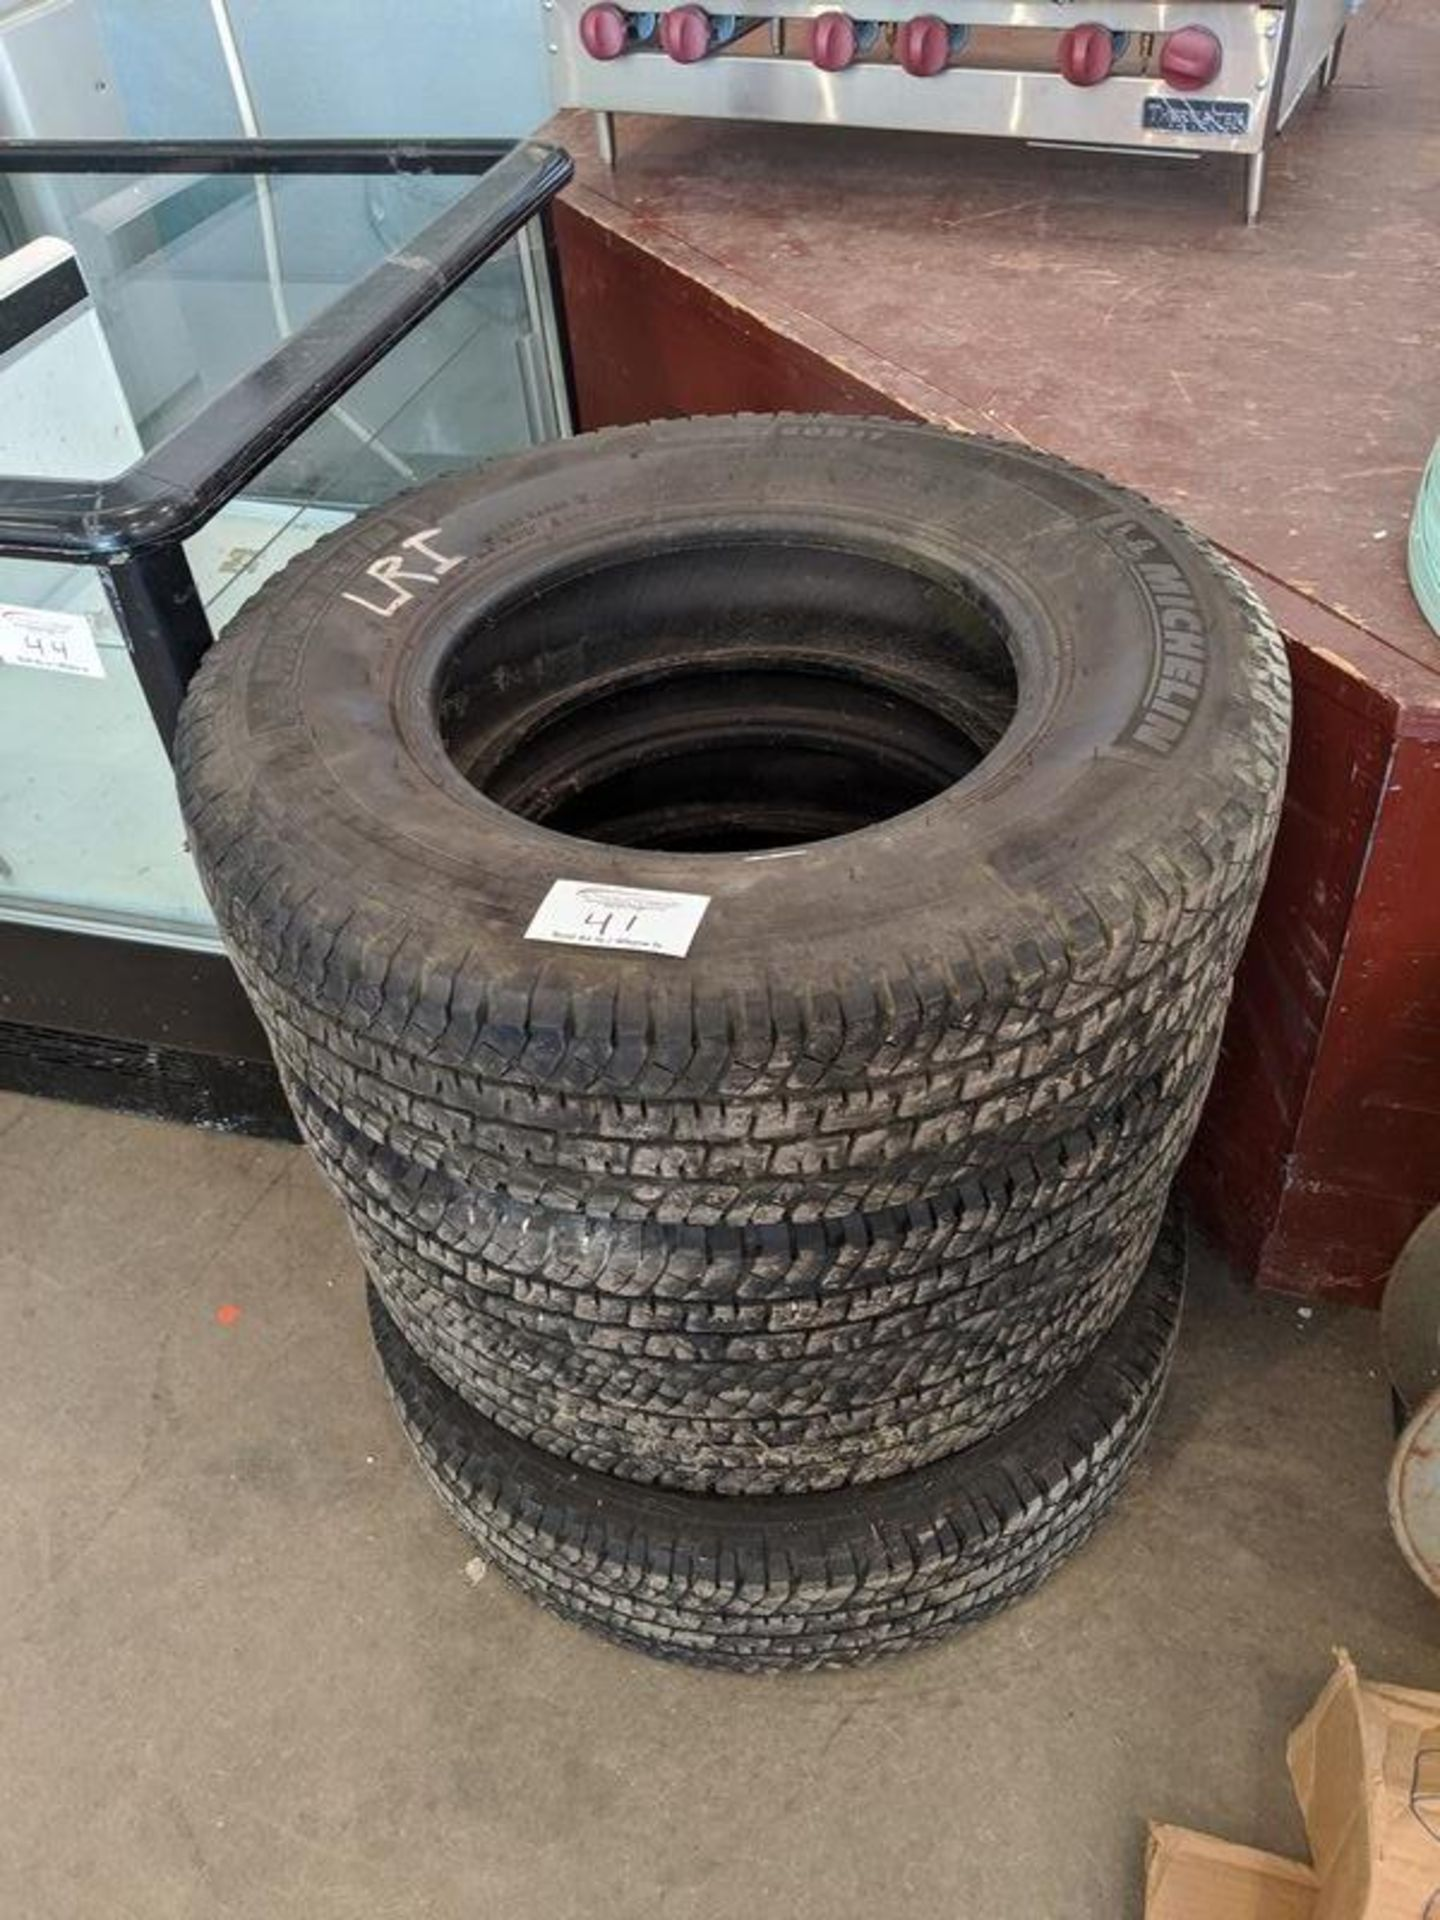 Lot 41 - 4 Michelin LT235/80/R17 Tires, Approx. 50% Tread